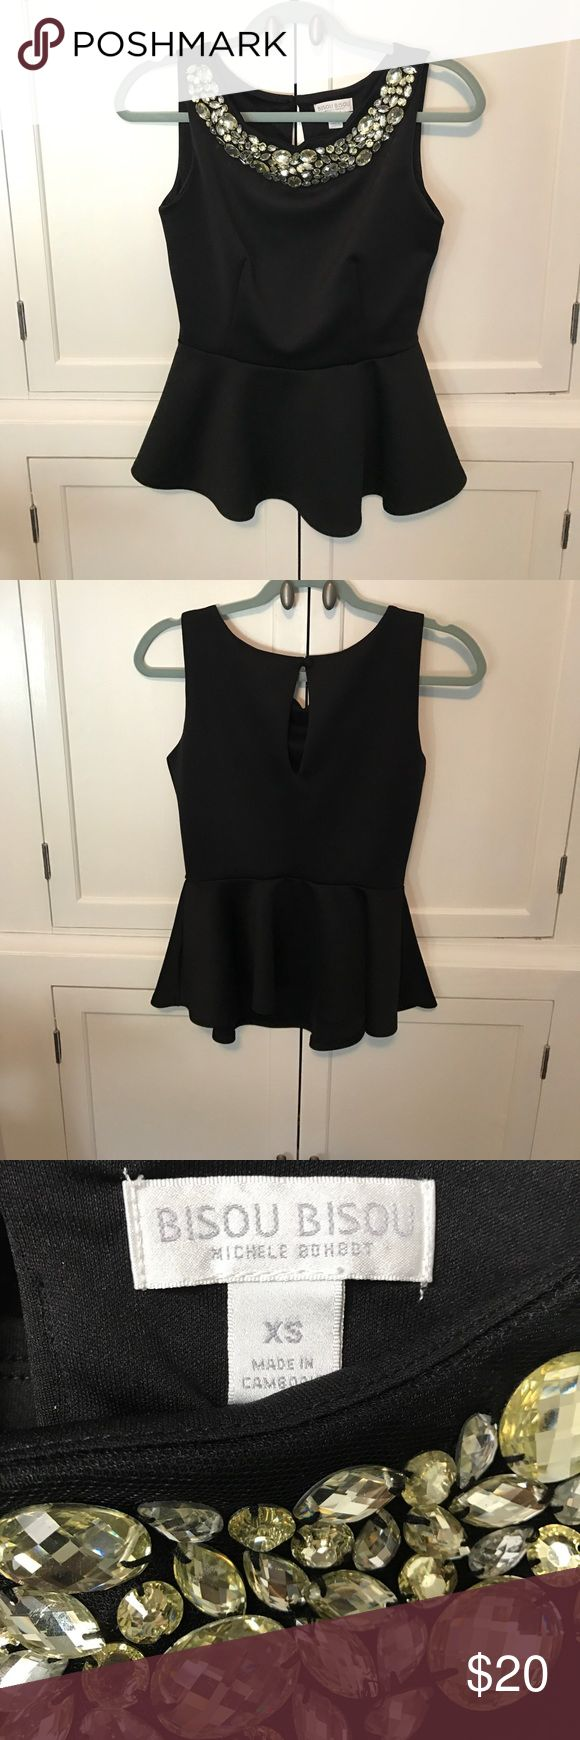 B I S O U   B I S O U Black peplum top with gorgeous beaded neckline | All gems are in tact, a couple are a hare loose, and some have some marks on them | Gems are citrine/pale yellow and clear | Keyhole closure on back | Great used condition, perfect for a night out! Bisou Bisou Tops